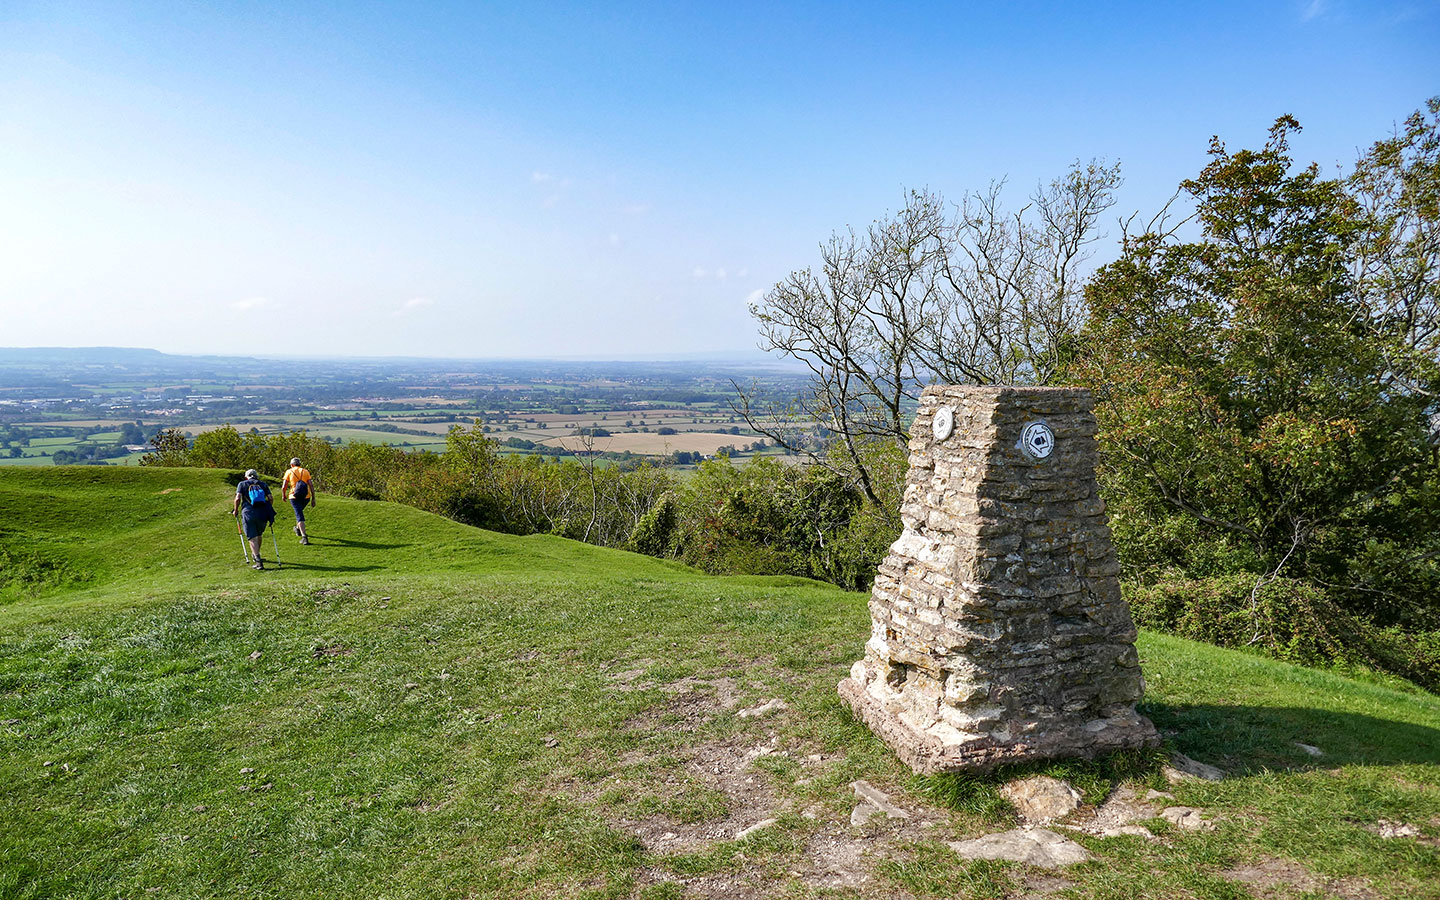 Views from Haresfield Beacon in the Cotswolds